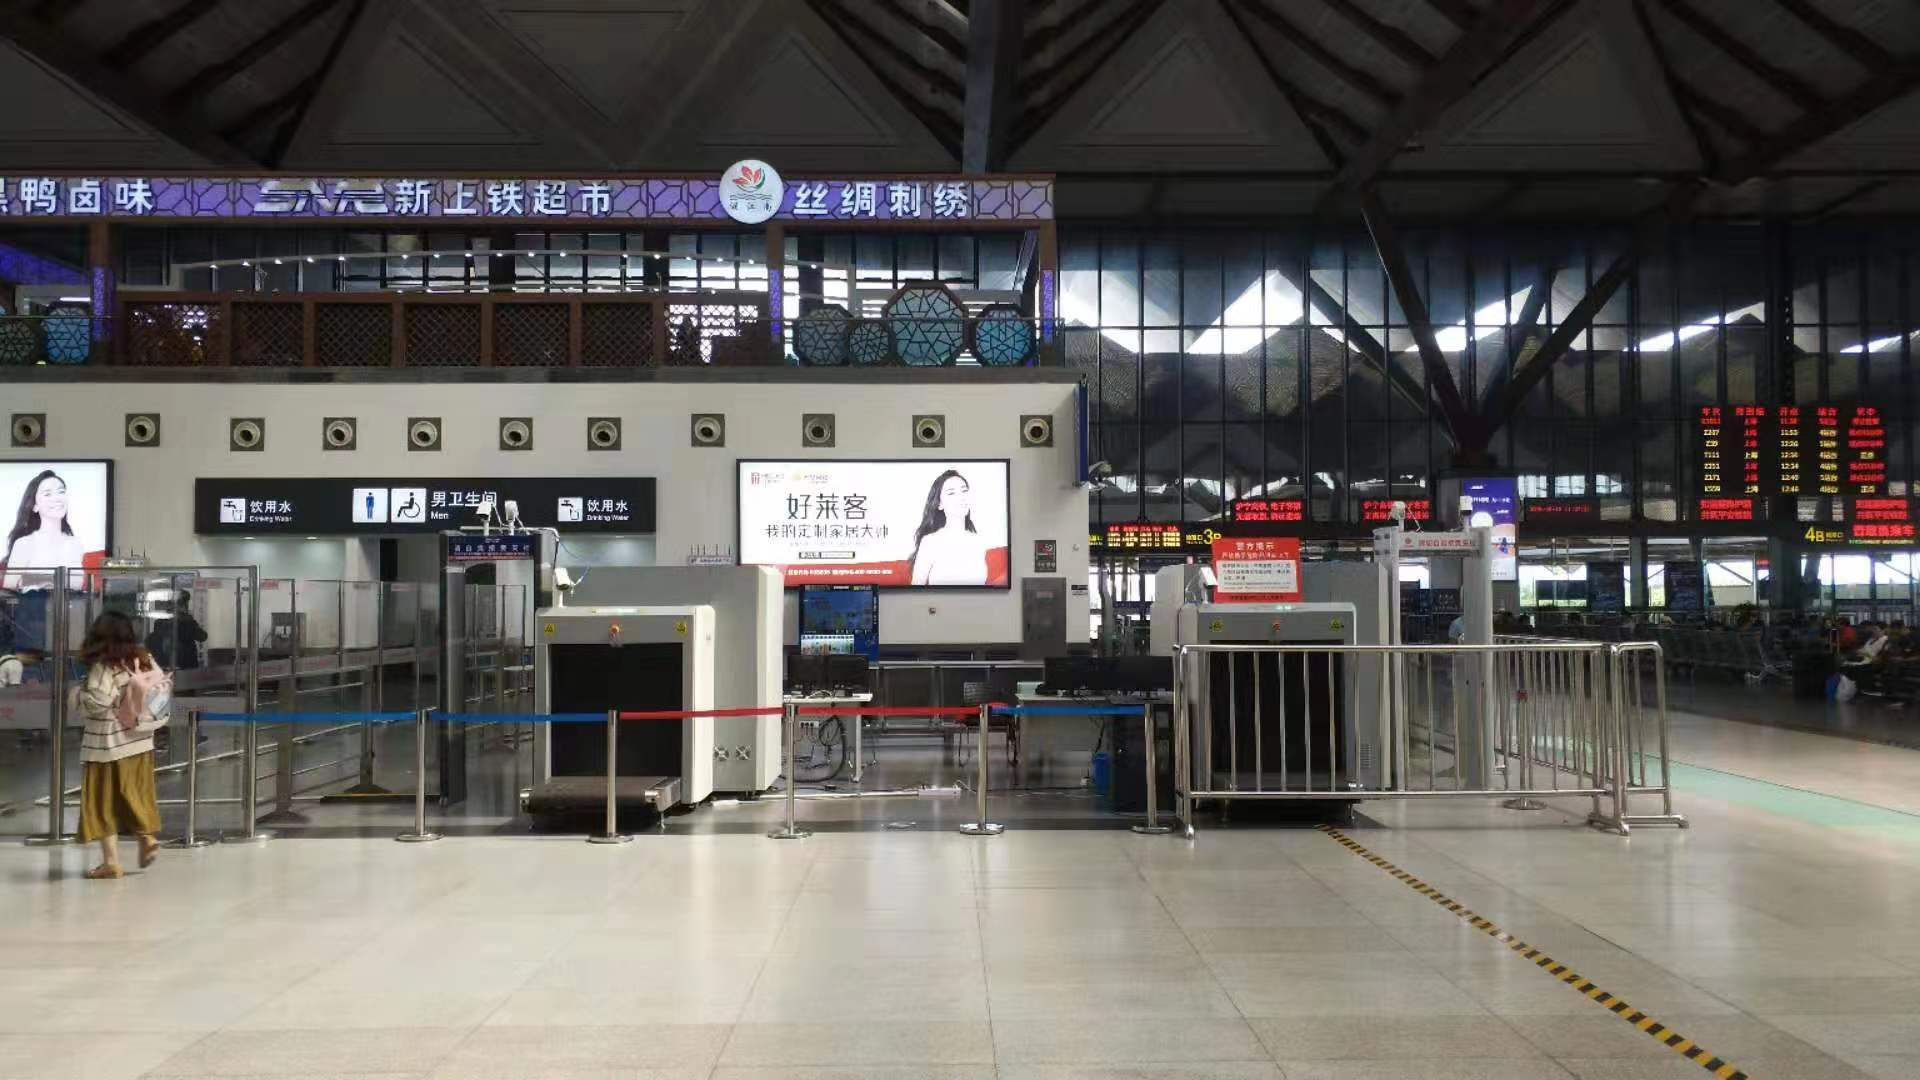 EASTIMAGE New Installations of X-ray Baggage Scanners in Nov. 2019